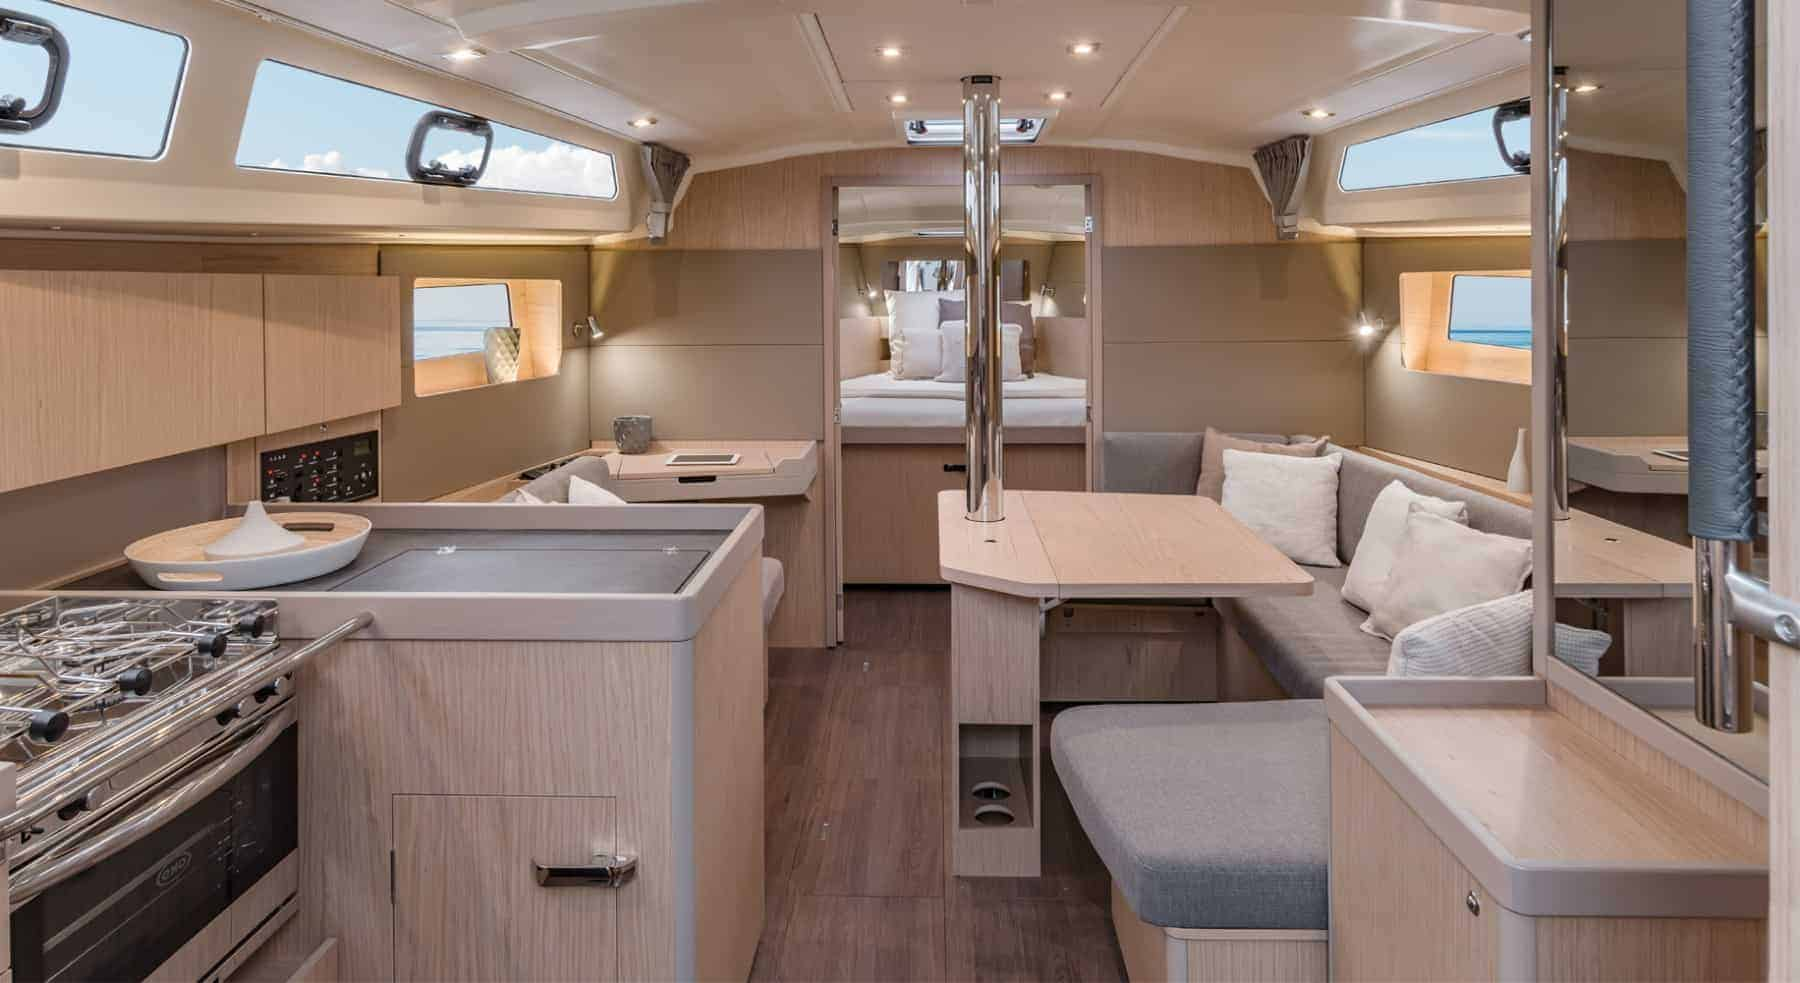 Beautiful and minimalistic kitchen and saloon area of the Beneteau Oceanis 41.1